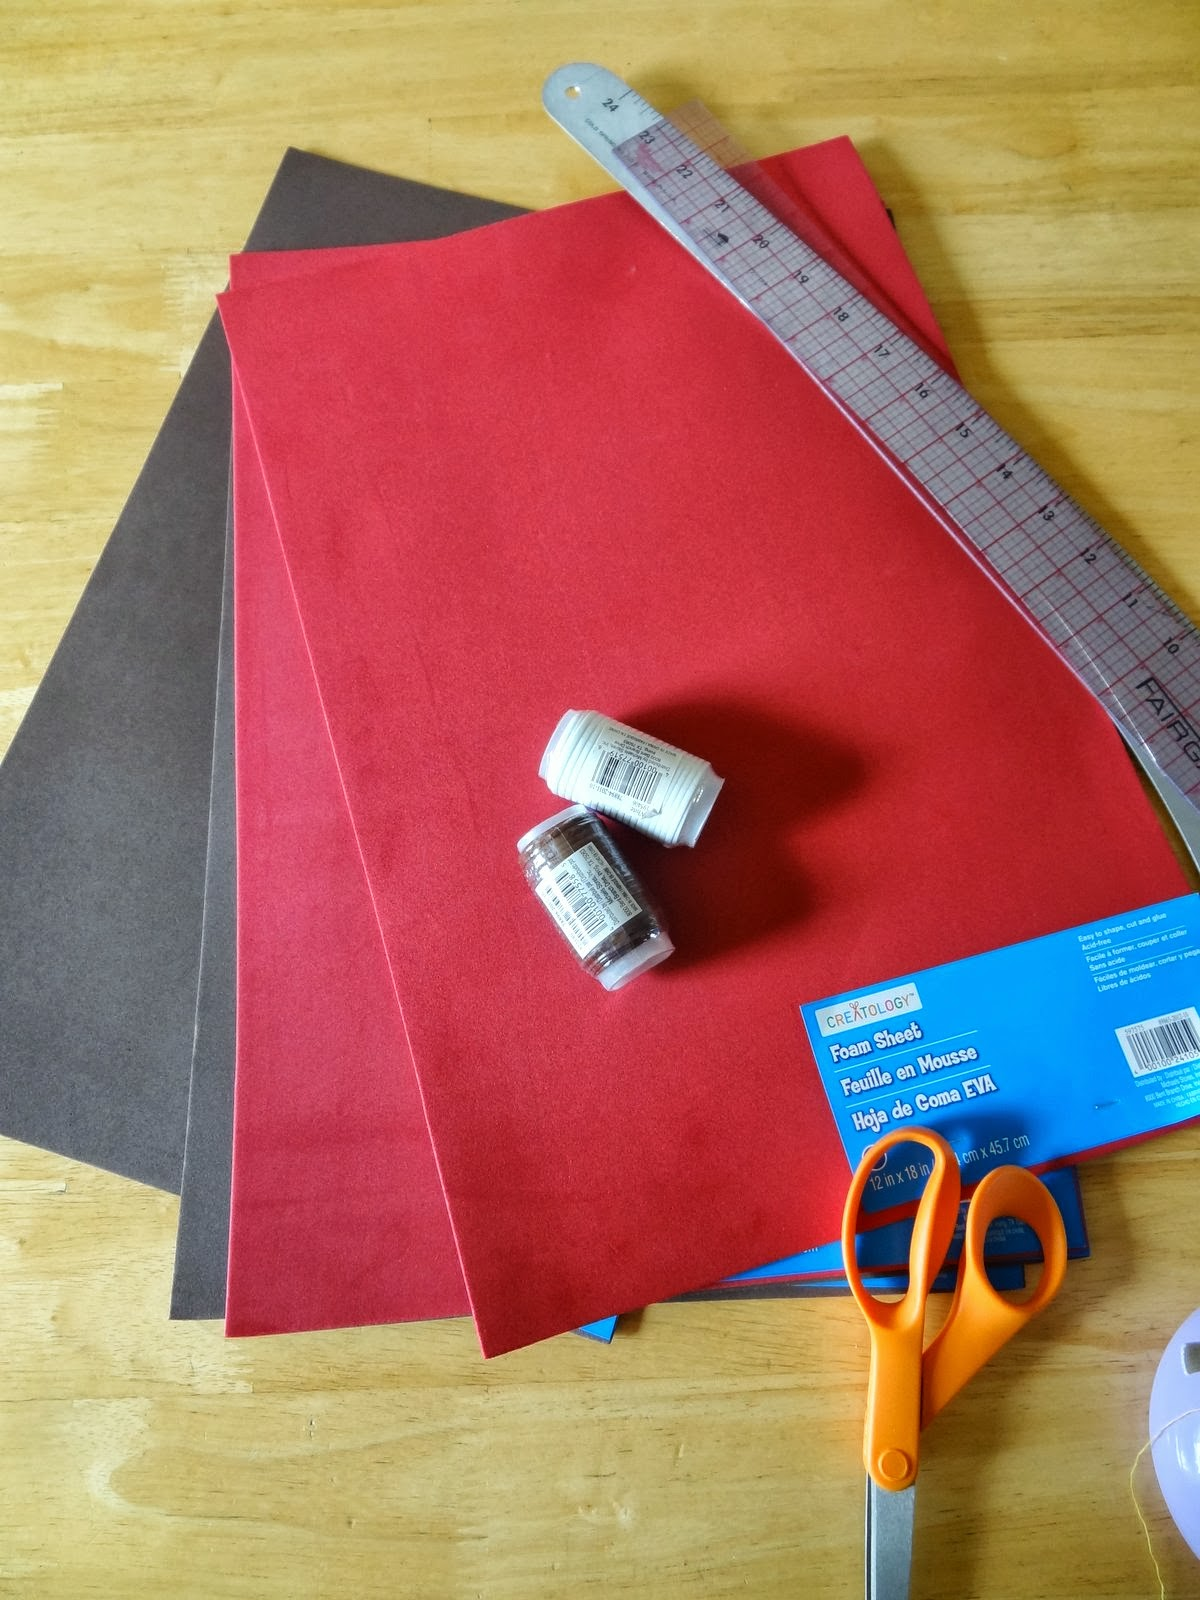 How to Make a Cowboy Hat from Foam - GYCT Designs 5ebe119f455